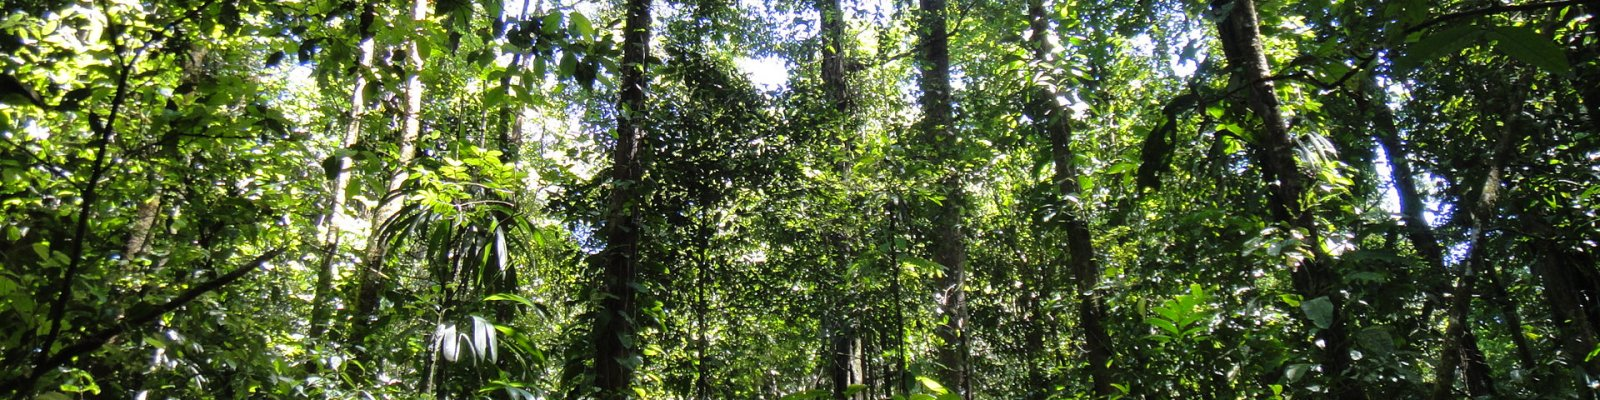 Tropical forest management and conservation